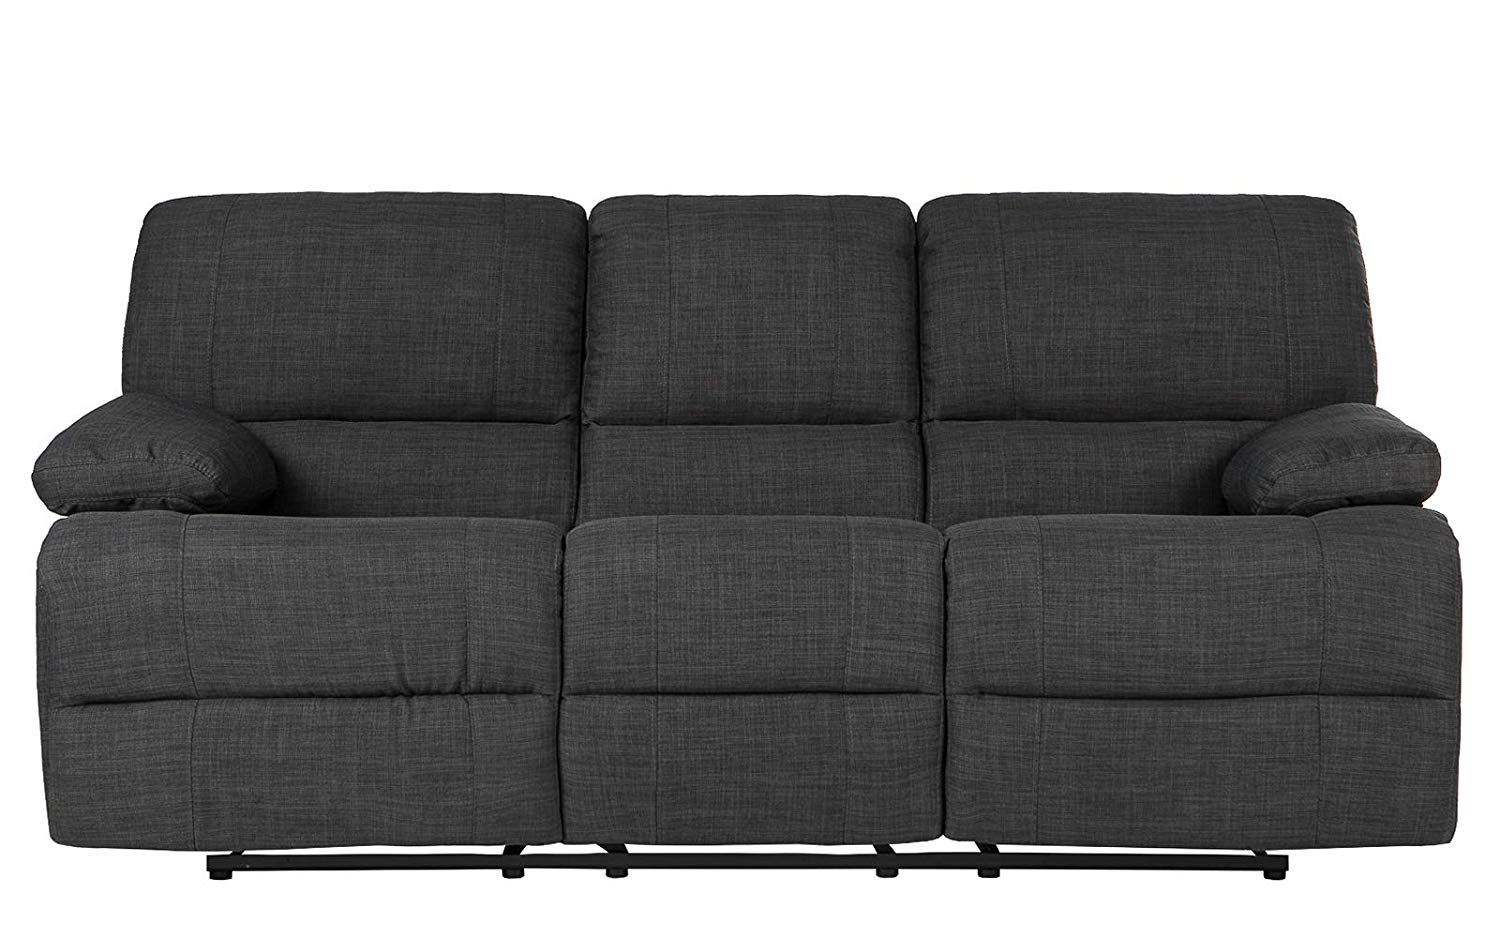 Made Sofa Reviews 5 Best Reclining Sofas Nov 2019 Reviews Buying Guide